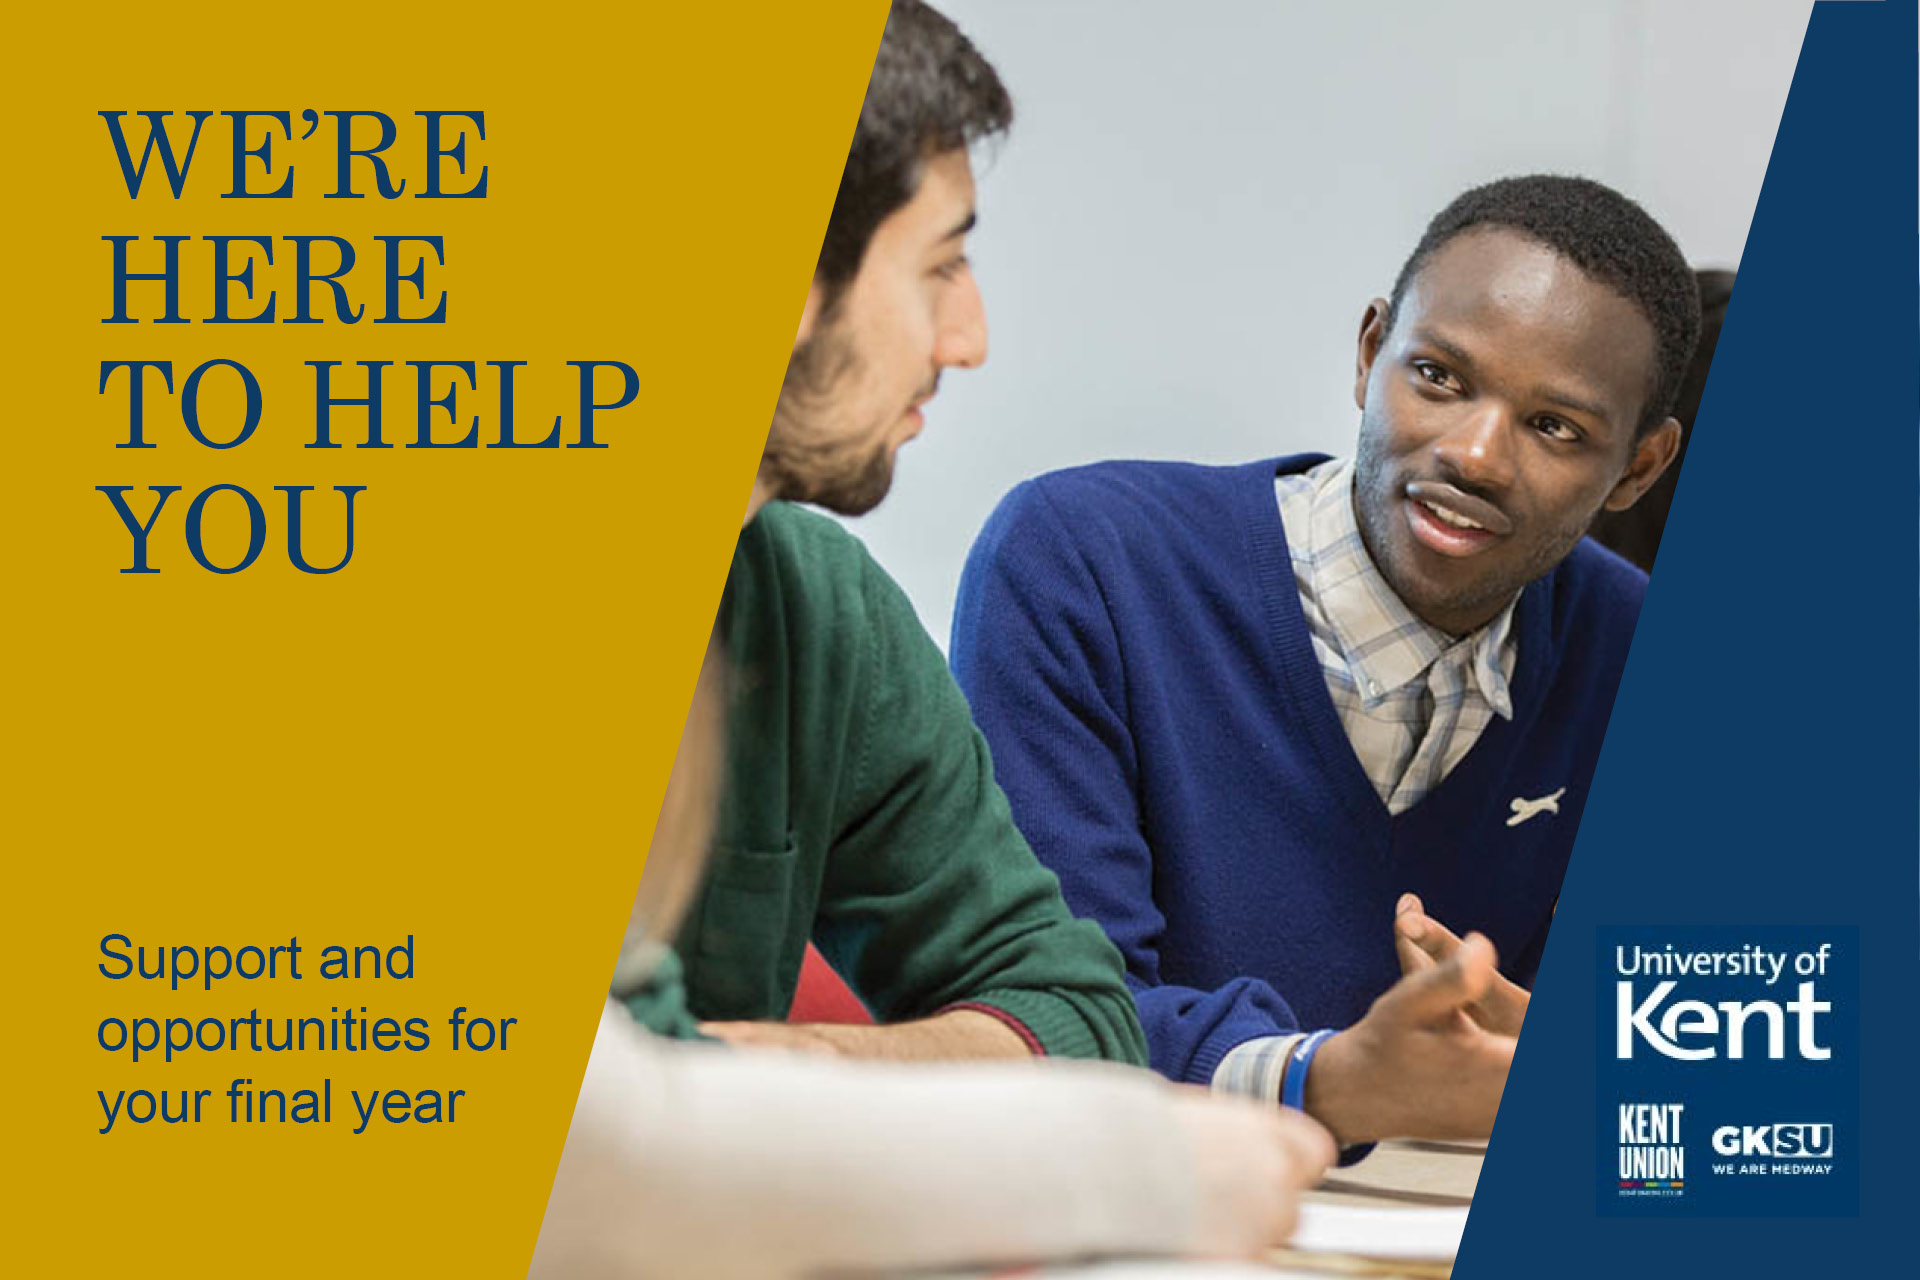 Here to help - support and opportunities for final year students